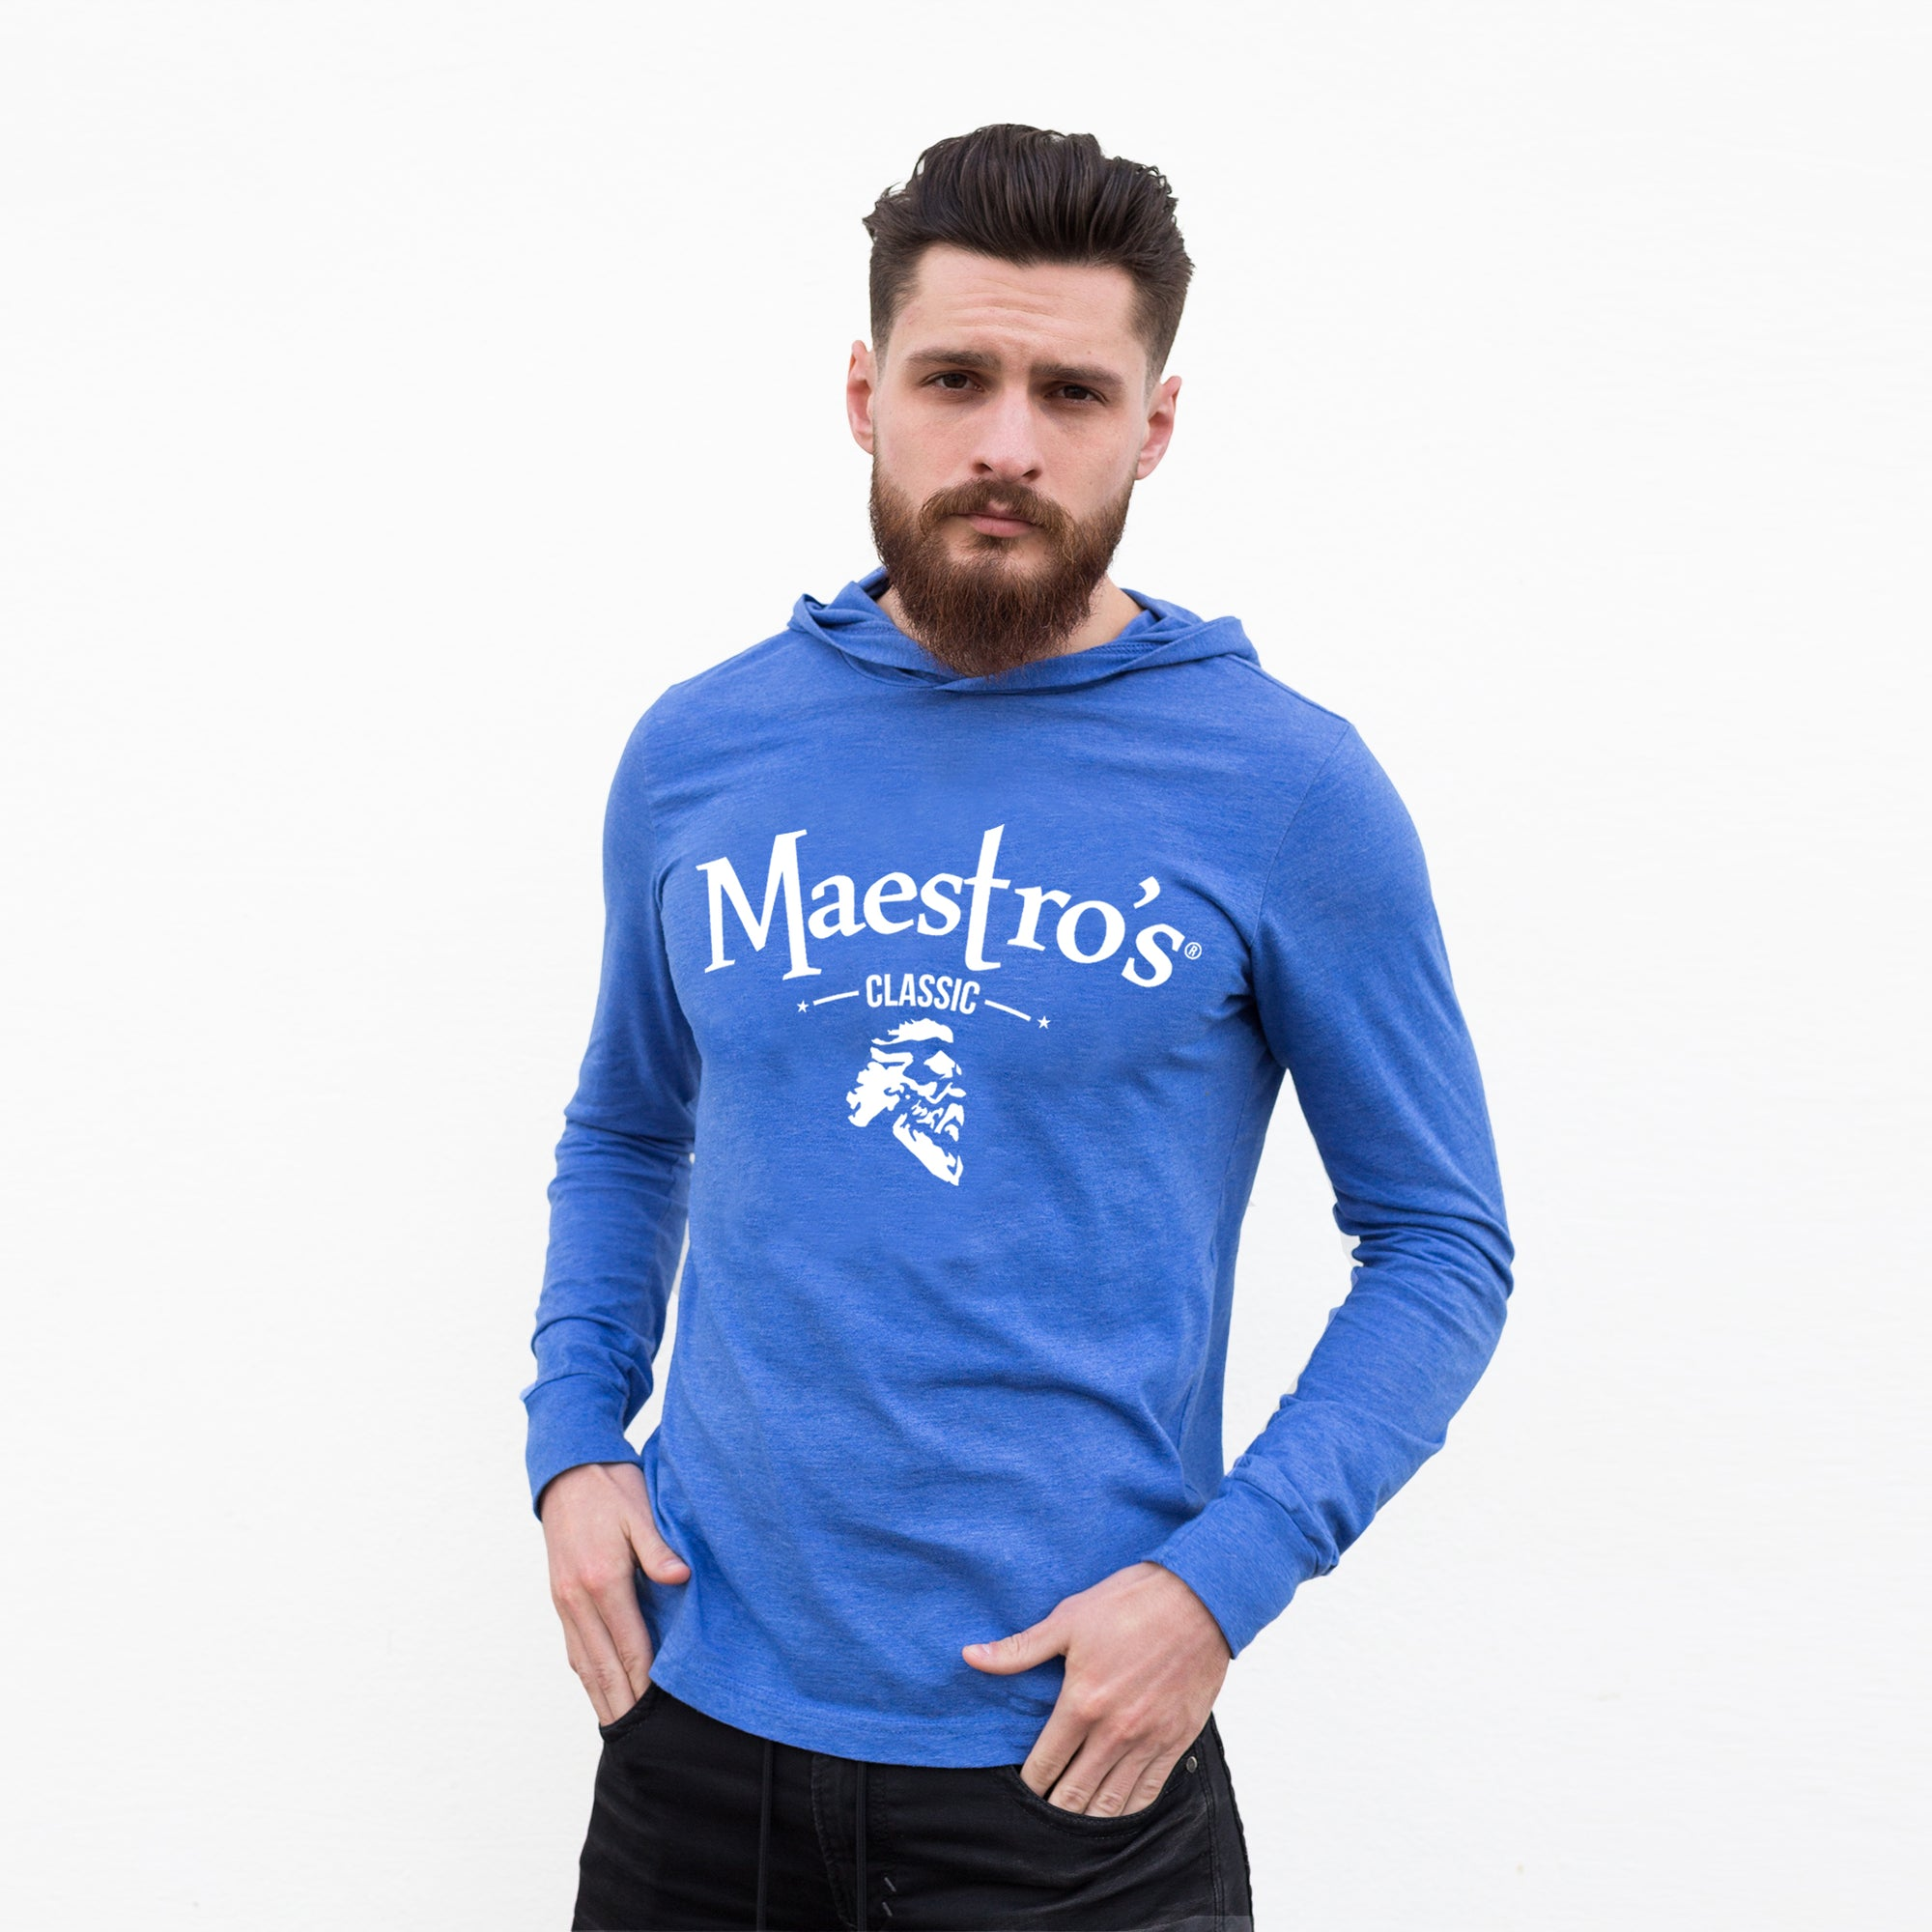 Maestro's Classic Blue Fitness Lite Hoodie - White Logo